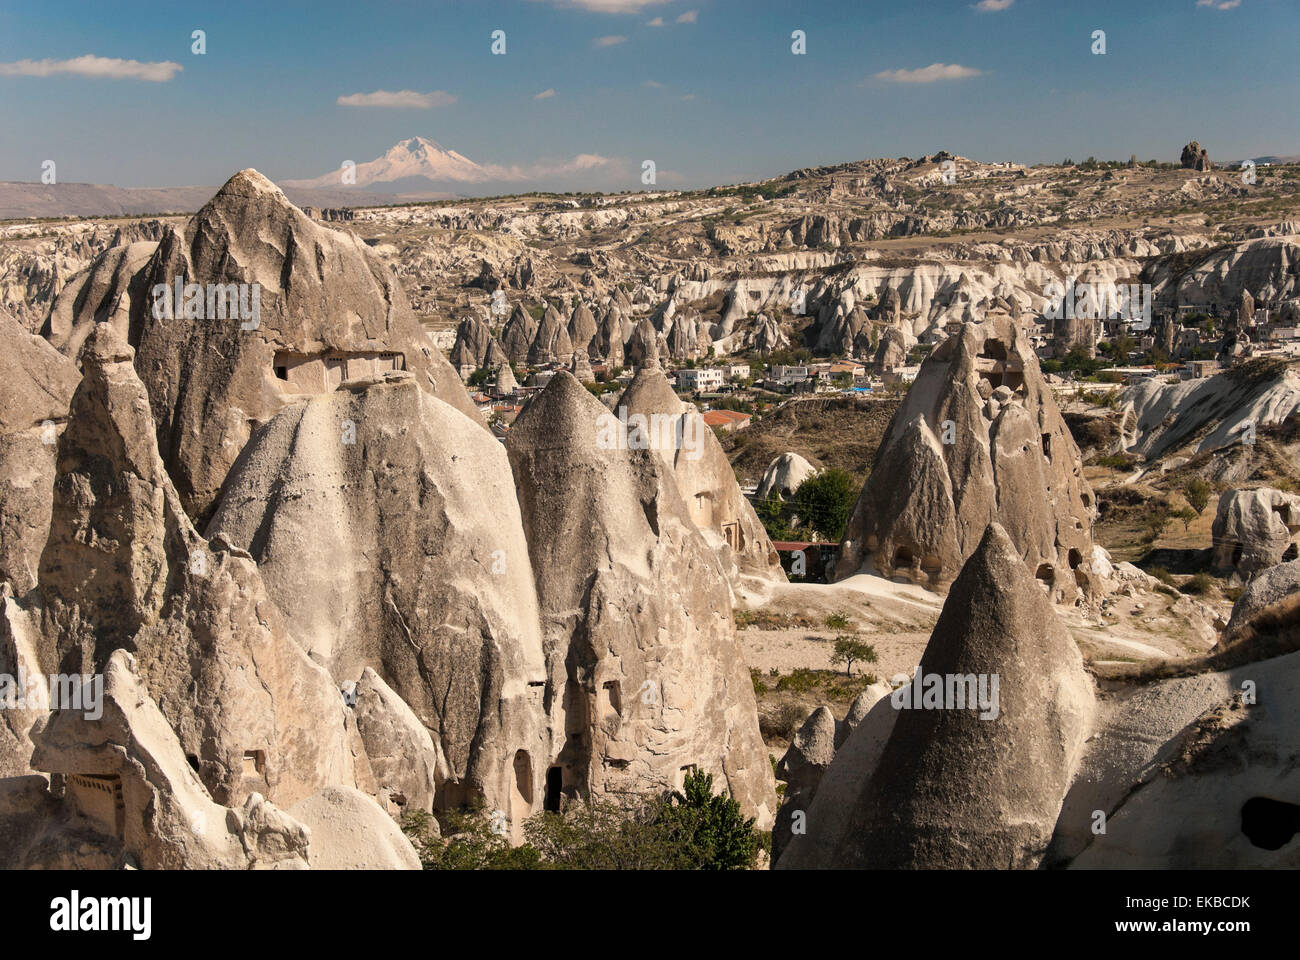 Goreme, UNESCO World Heritage Site, Cappadocia, Anatolia, Turkey, Asia Minor, Eurasia - Stock Image